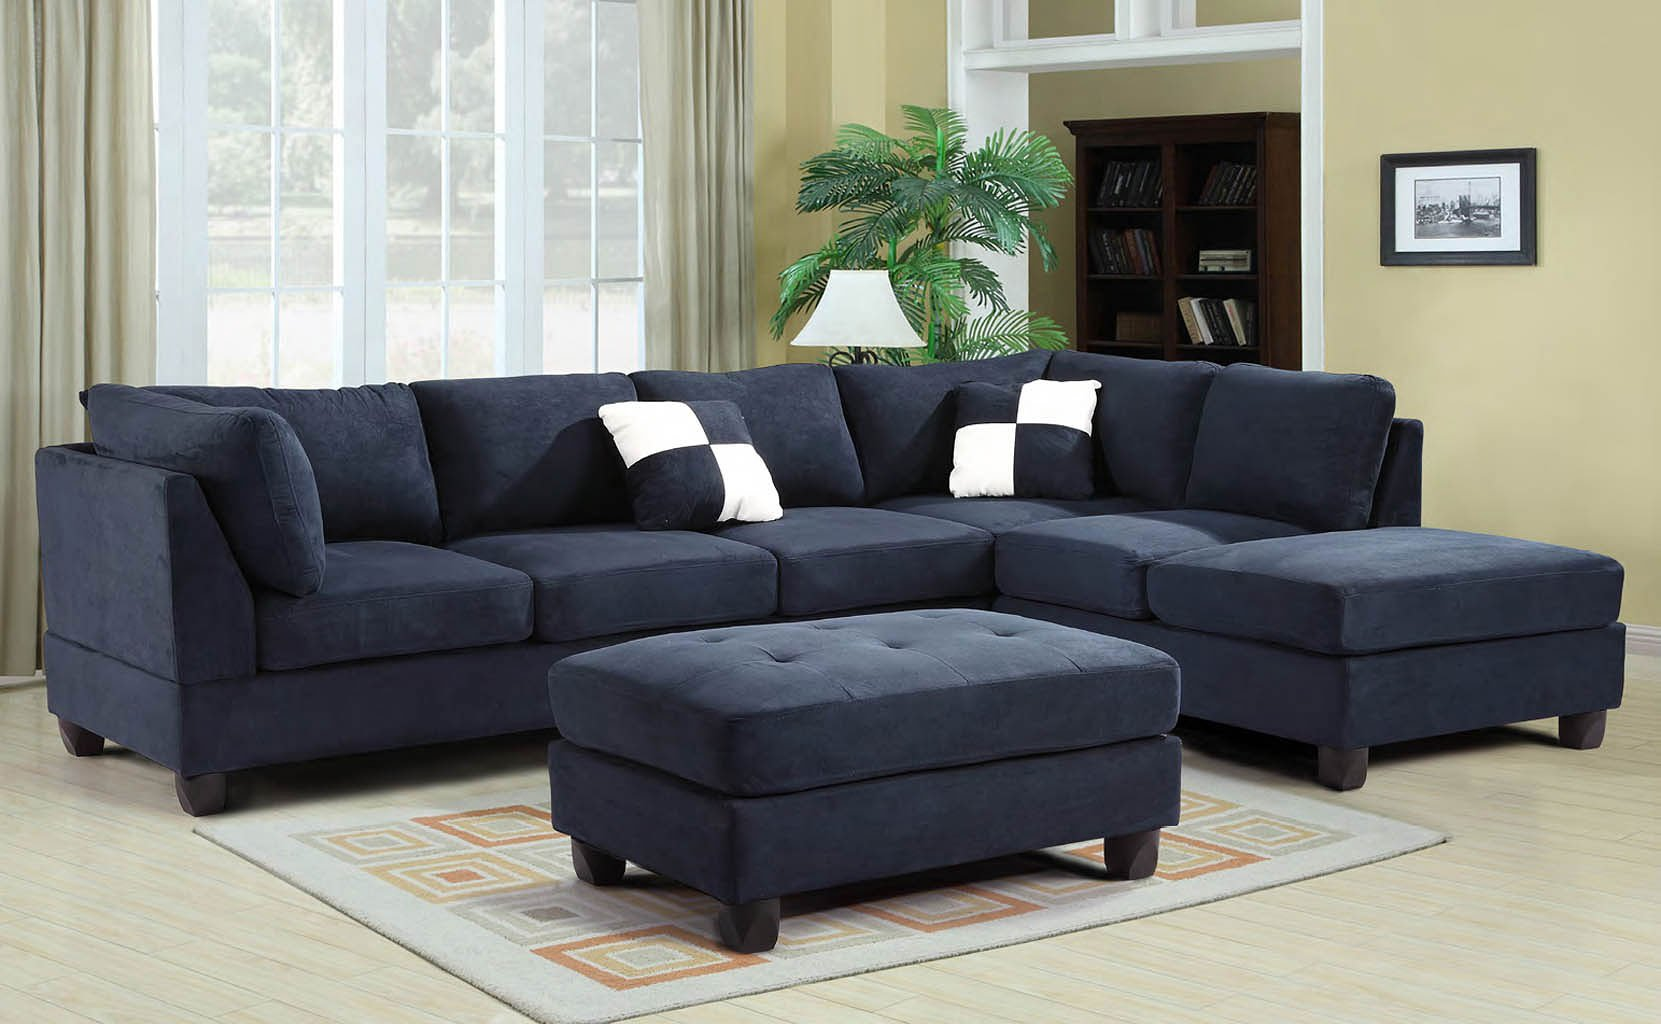 Blue Living Room Chairs G630 Reversible Sectional Set Navy Blue Living Room